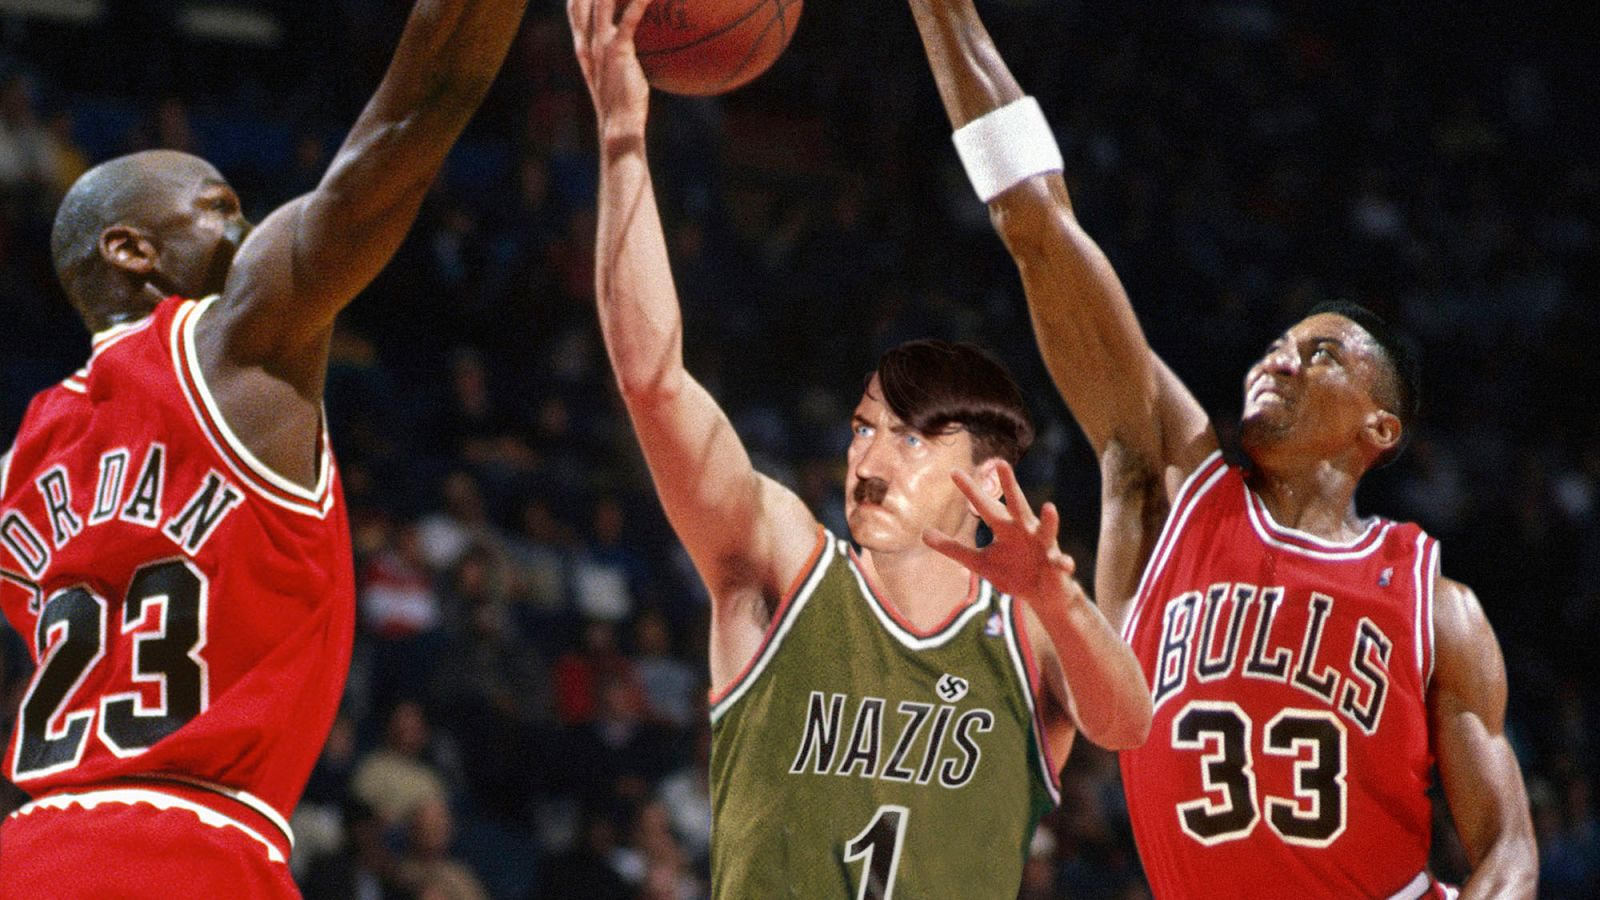 New Alternate-History Drama Examines What Would Have Happened If Nazis Won 1991 NBA Finals https://t.co/4CLYFJVLQb https://t.co/cdctBEmPpq